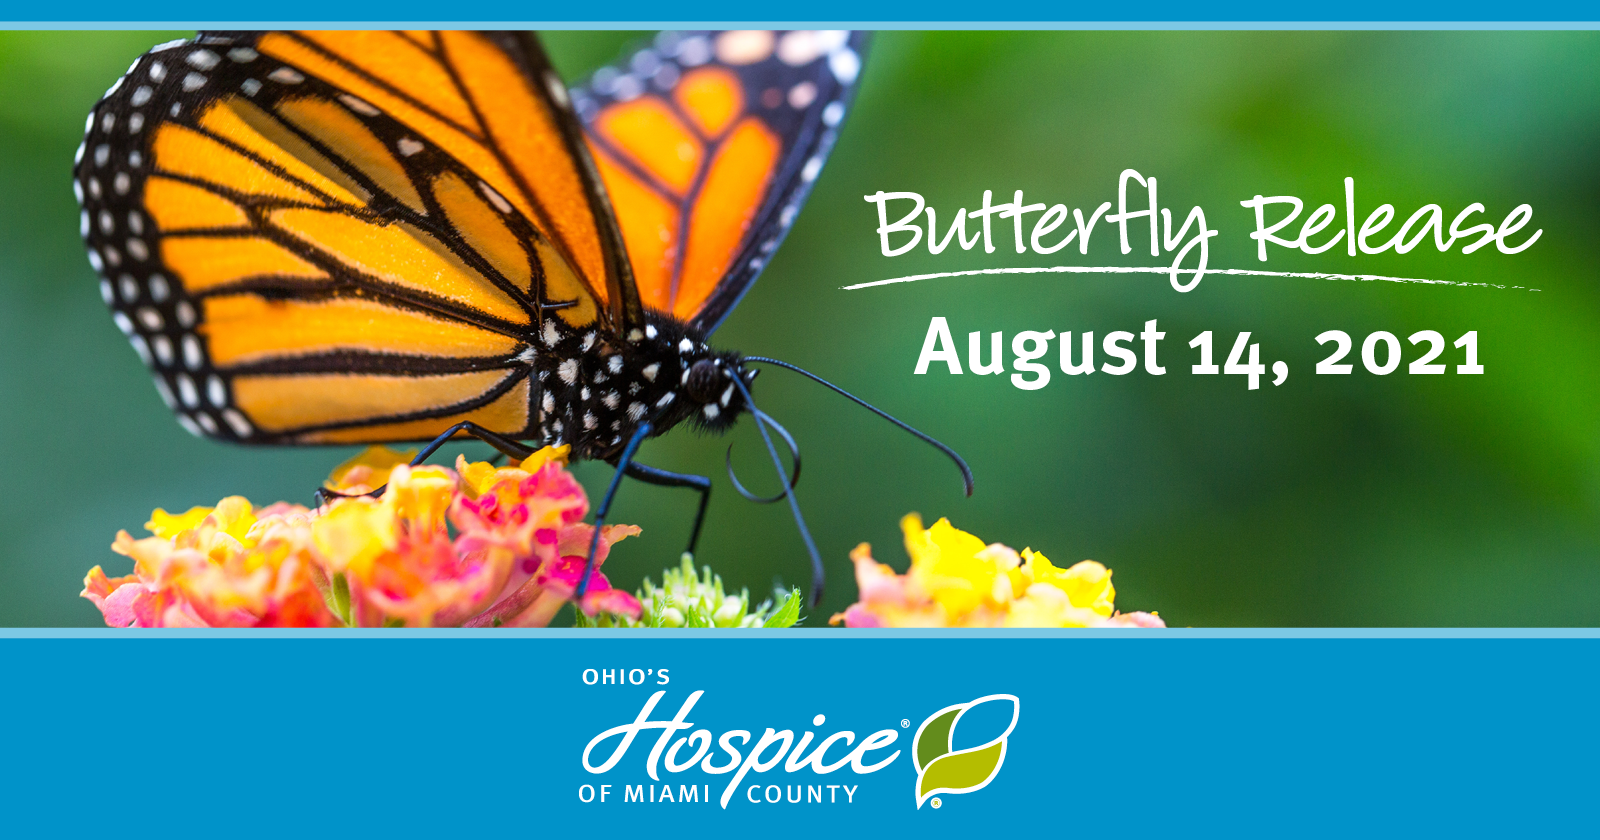 Butterfly Release - August 14, 2021 - Ohio's Hospice Of Miami County